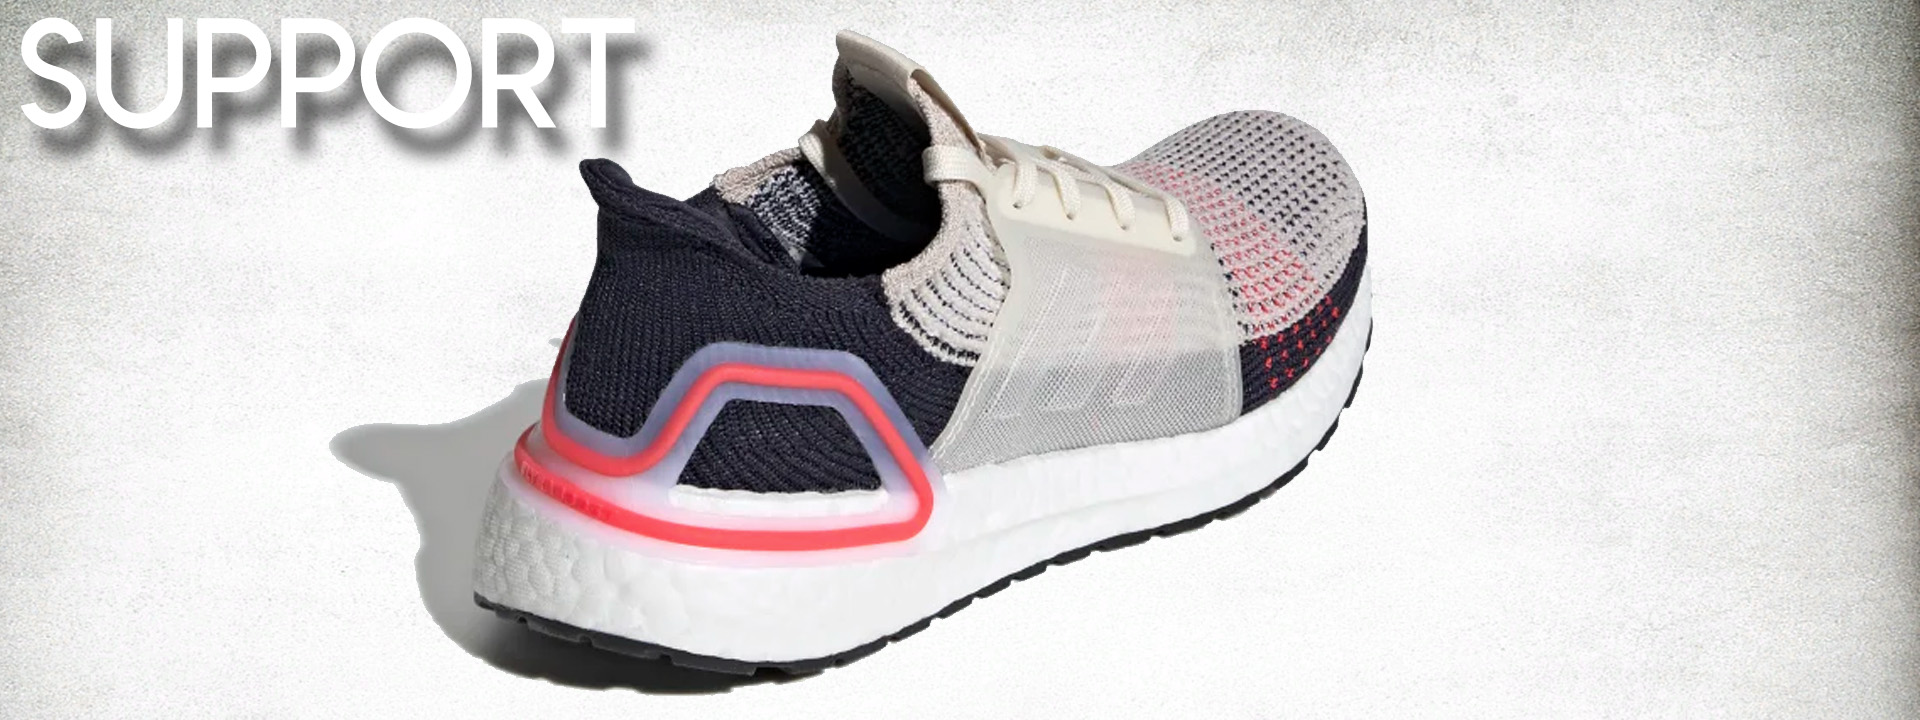 adidas Ultra Boost 2019 Performance Review - WearTesters